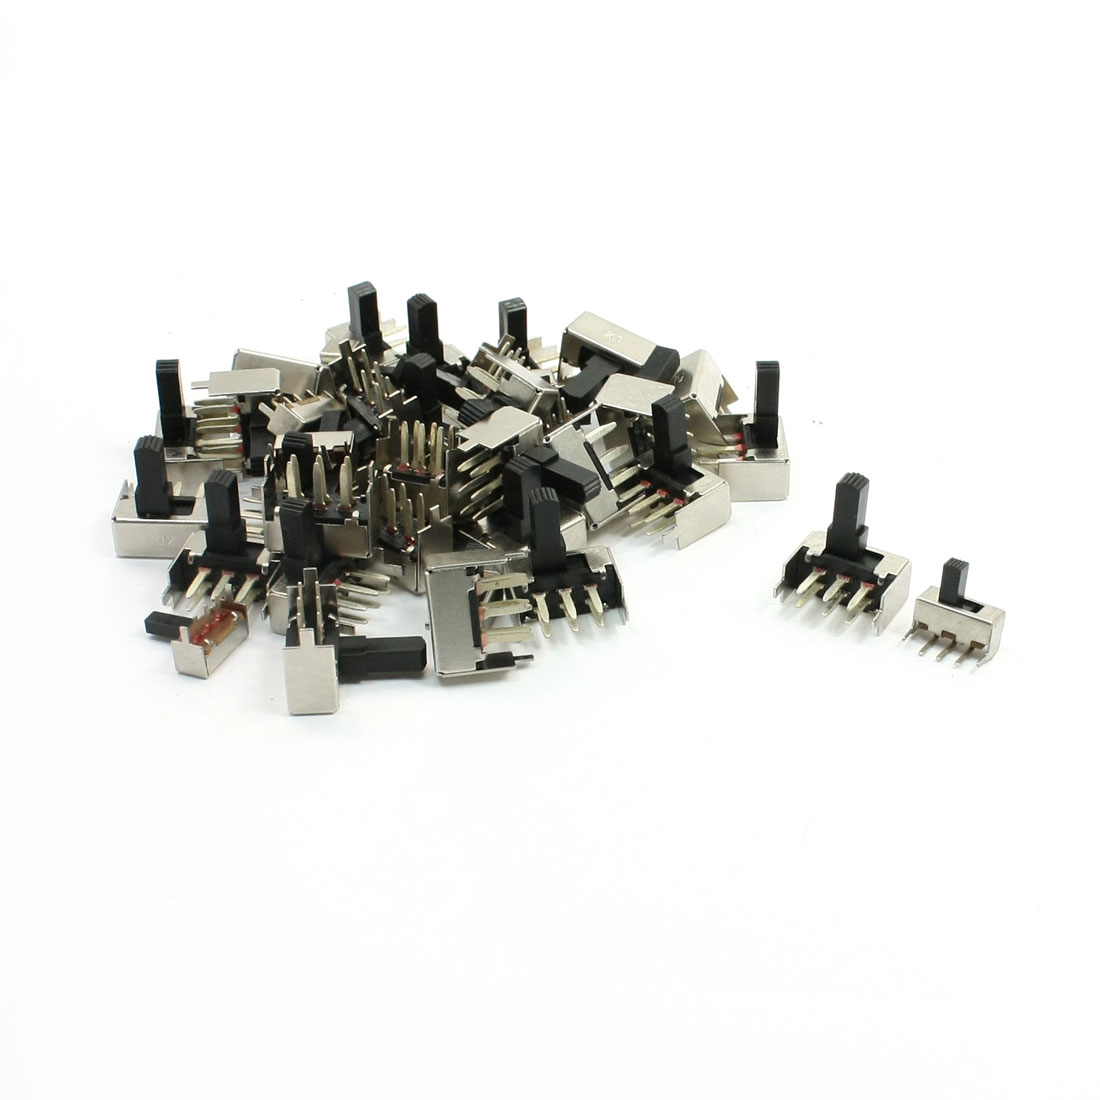 40 Pcs 6 Pins 2P2T DPDT Throug-Hole PCB Mounting Slide Switch